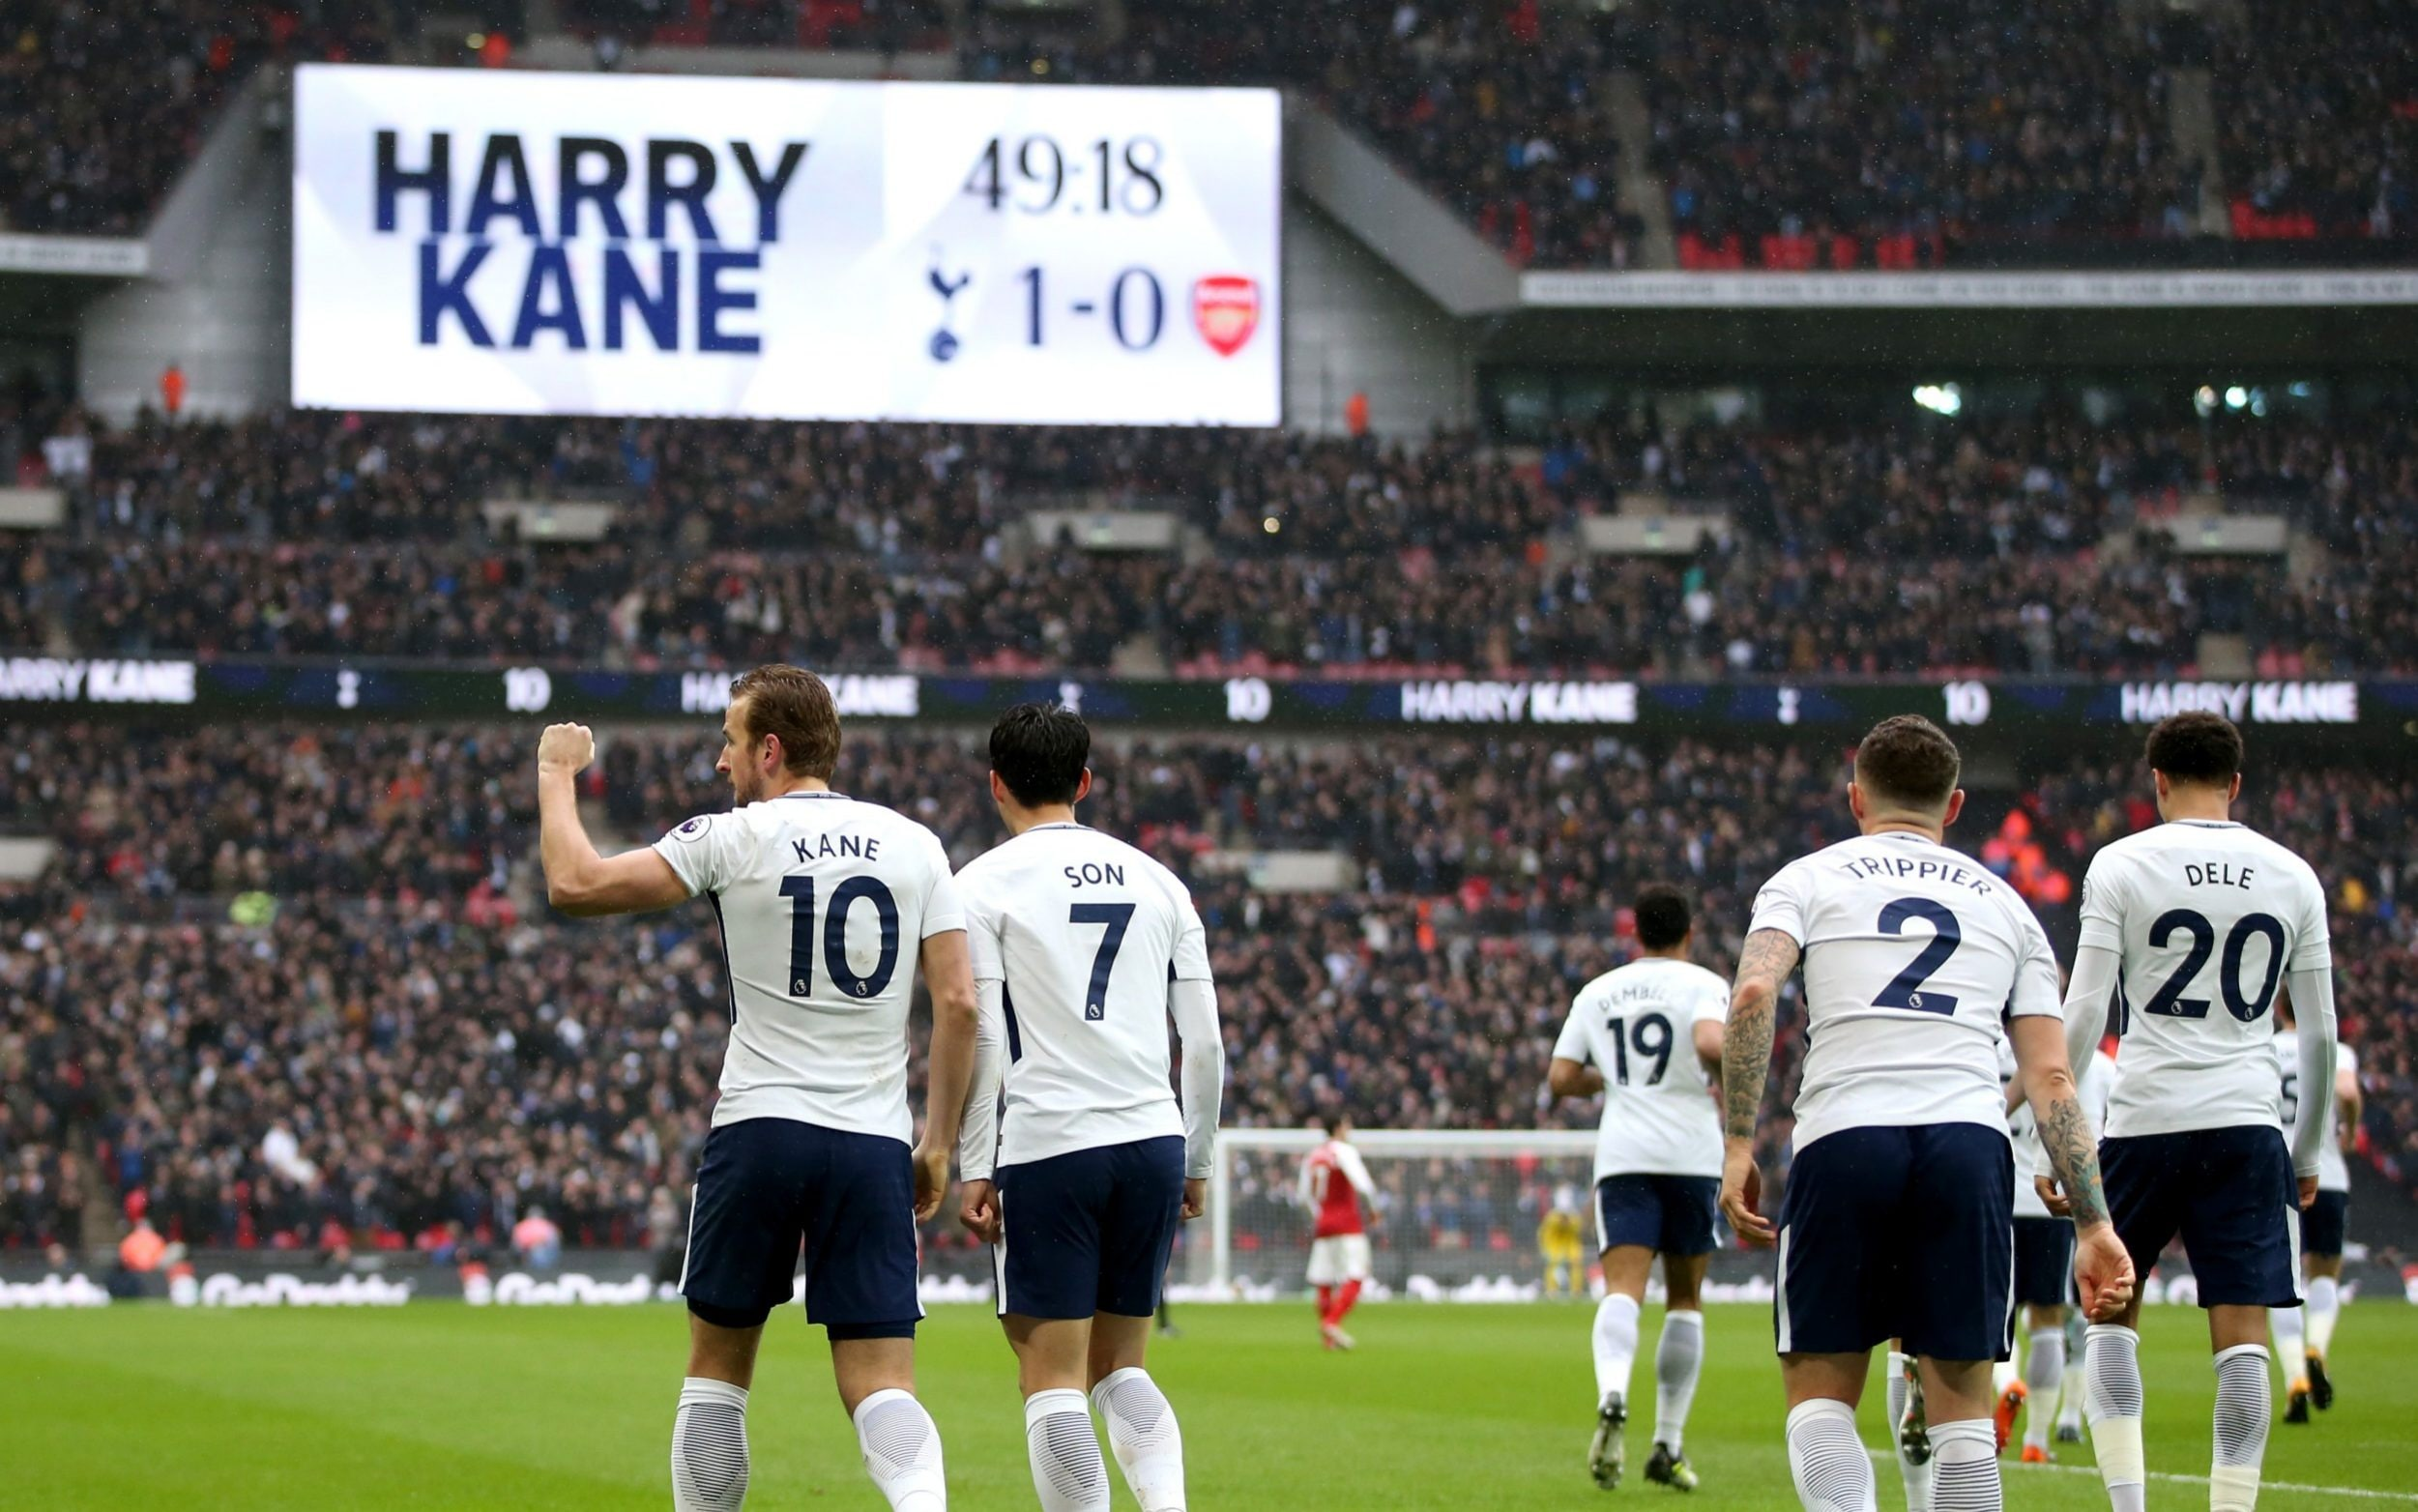 Tottenham 1 Arsenal 0 Harry Kane Goal Confirms Power